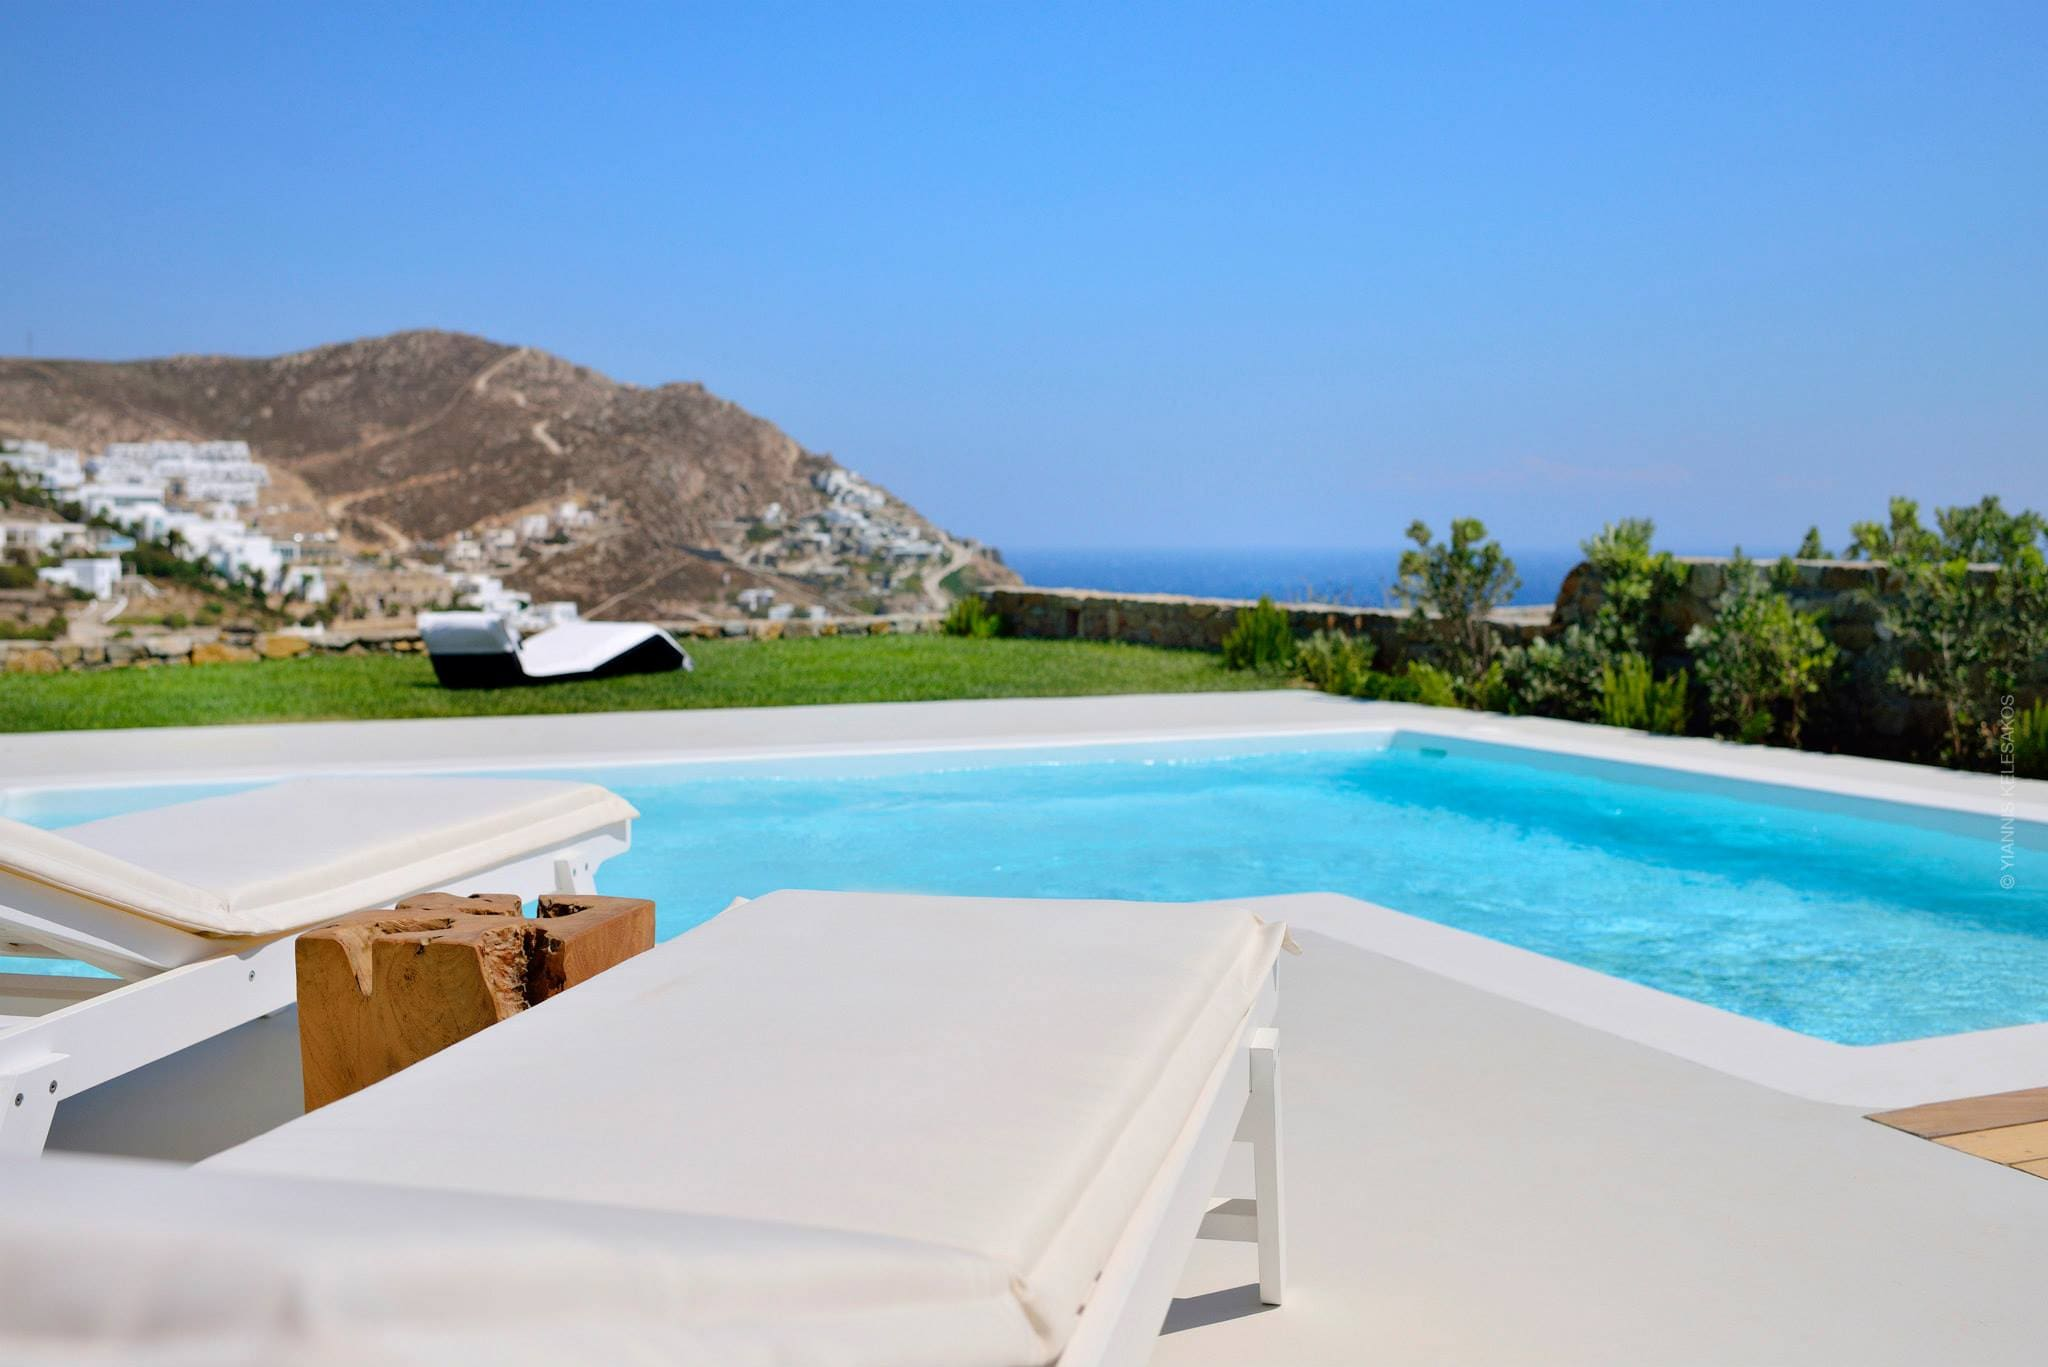 Property Image 1 - Modern Villa with private pool close to Elia beach